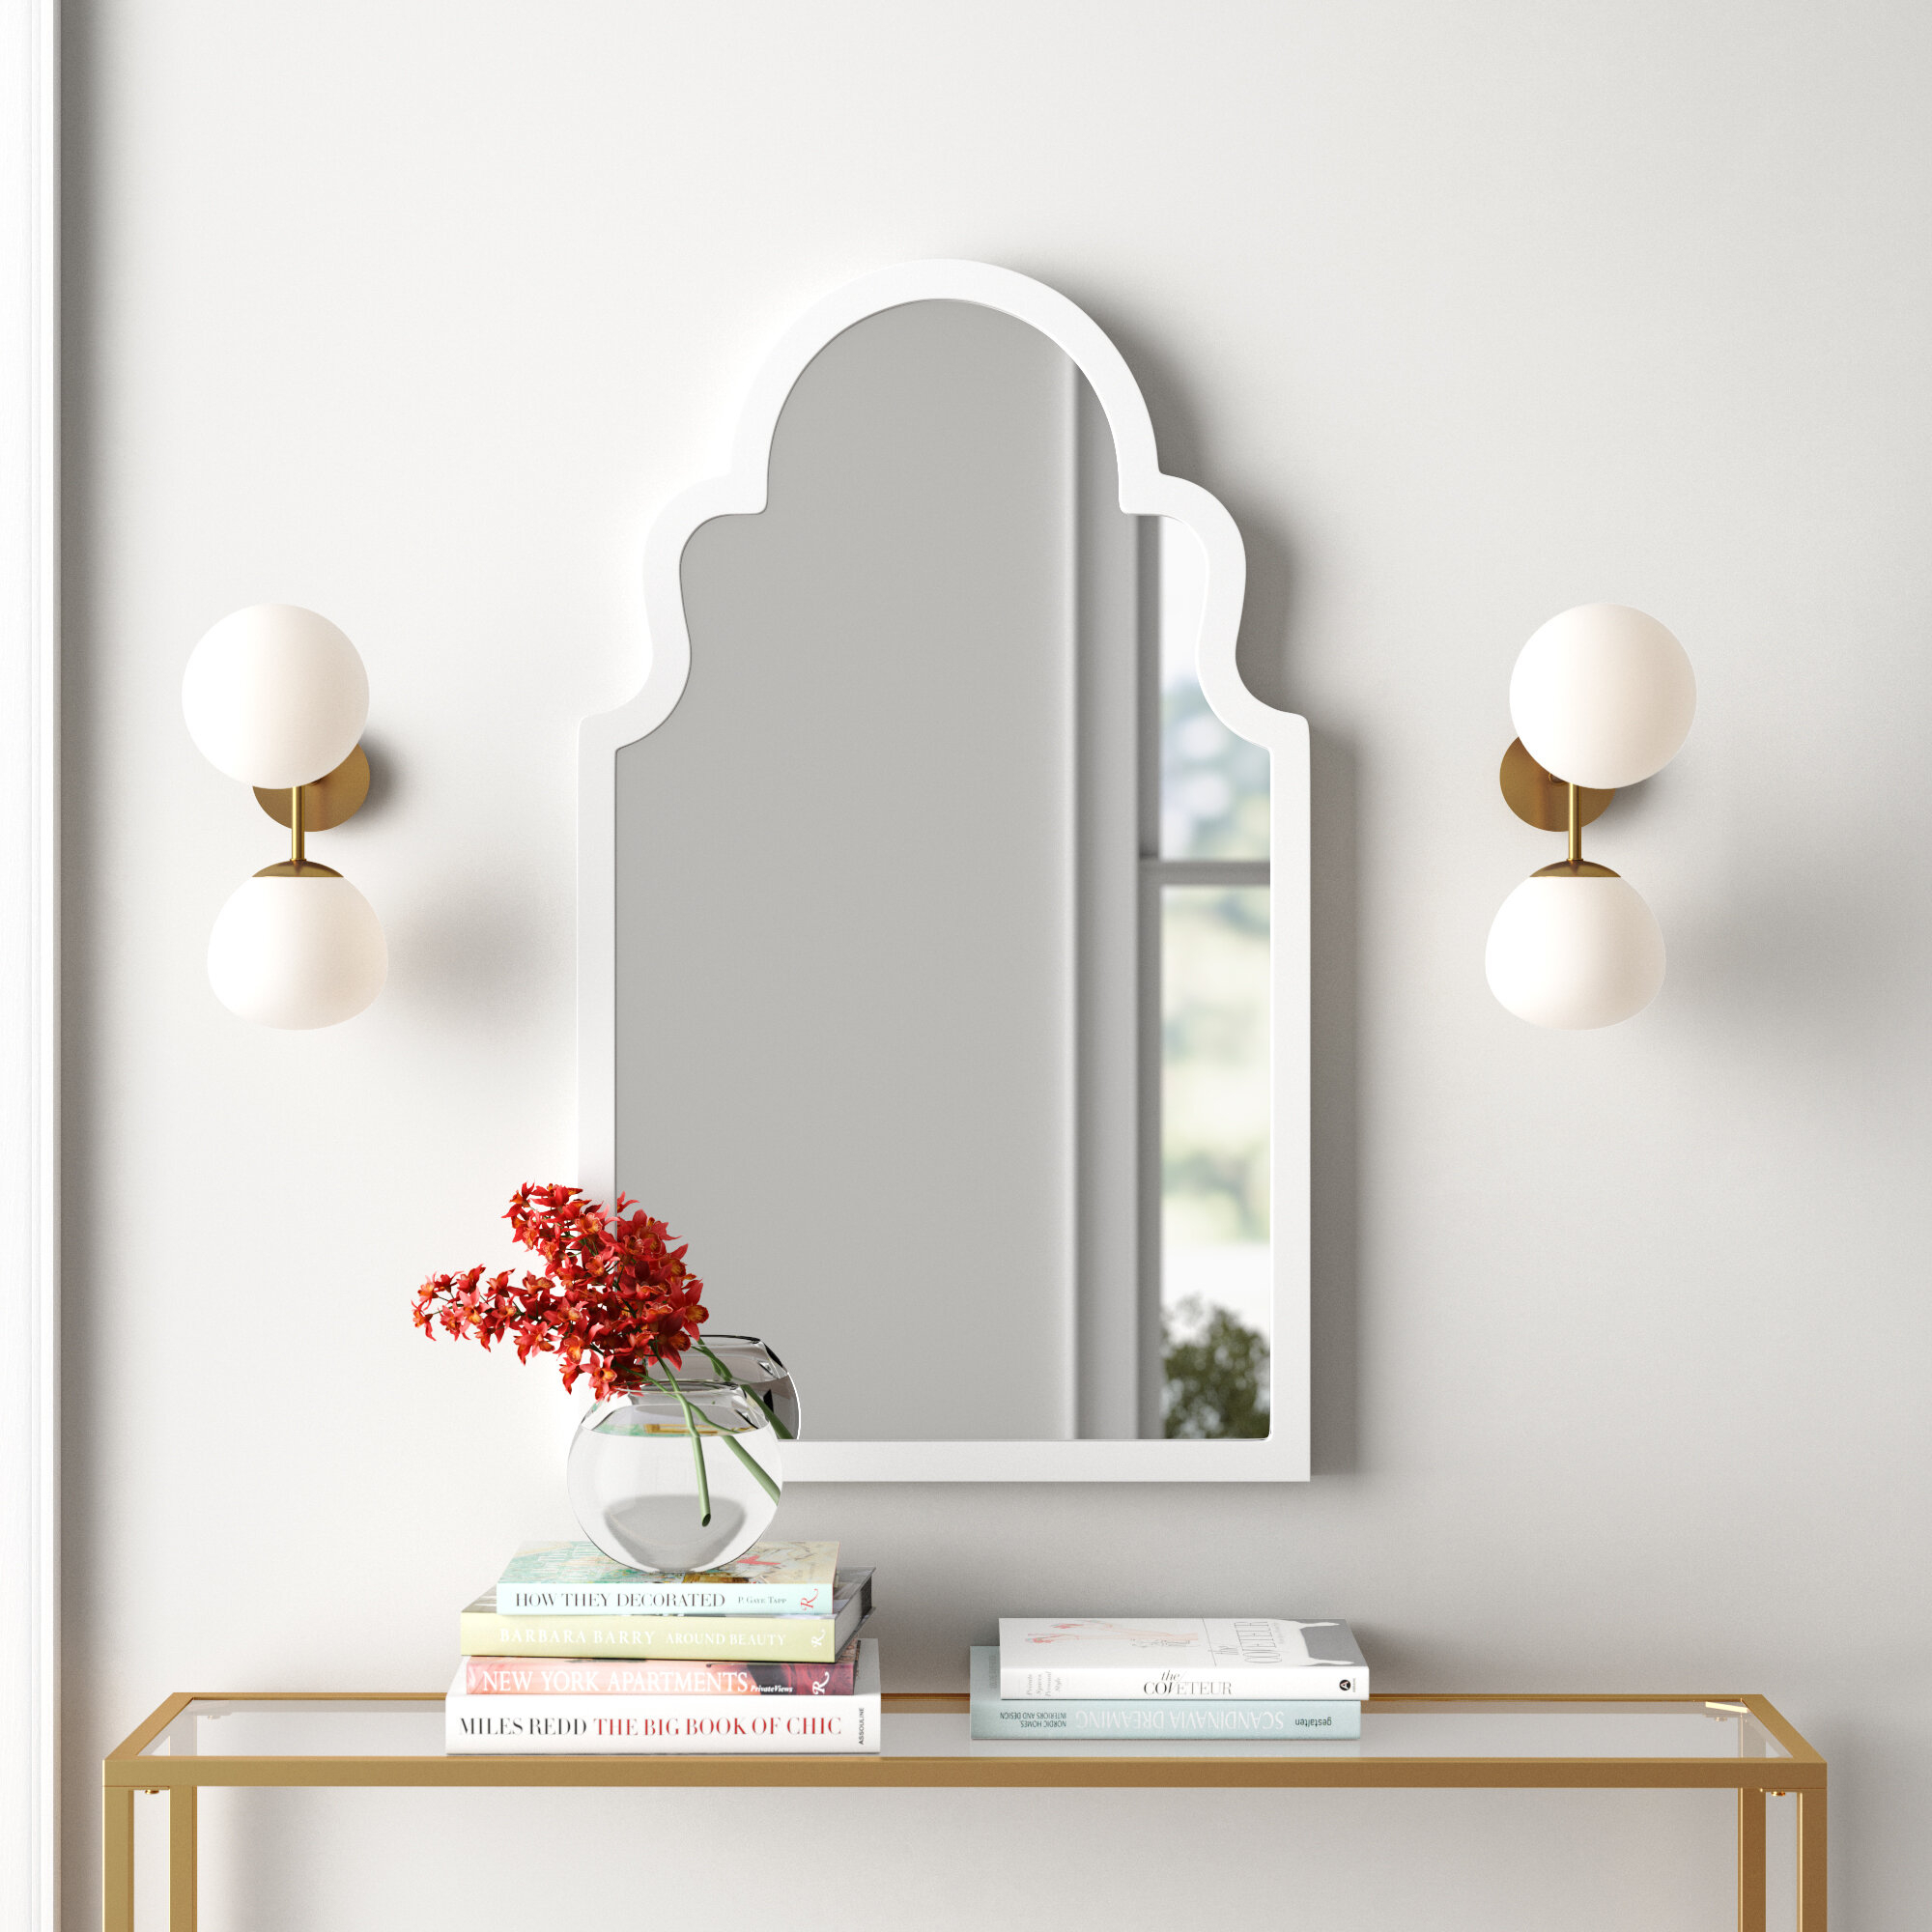 Arch Vertical Wall Mirror in Dariel Tall Arched Scalloped Wall Mirrors (Image 3 of 30)